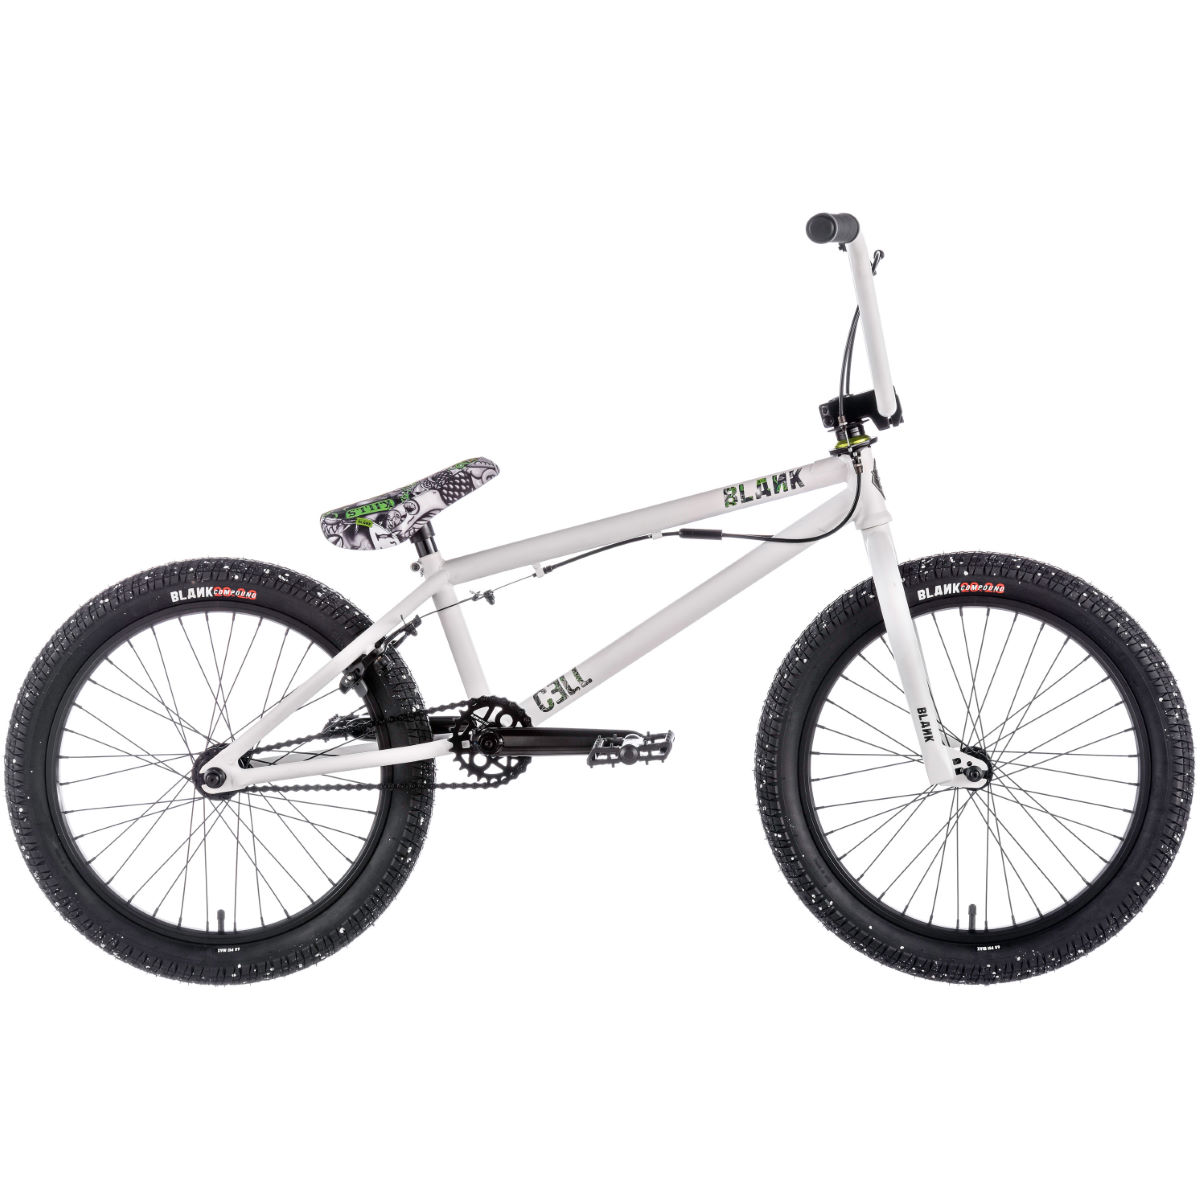 Blank Cell BMX Bike - Bicicletas de BMX Freestyle